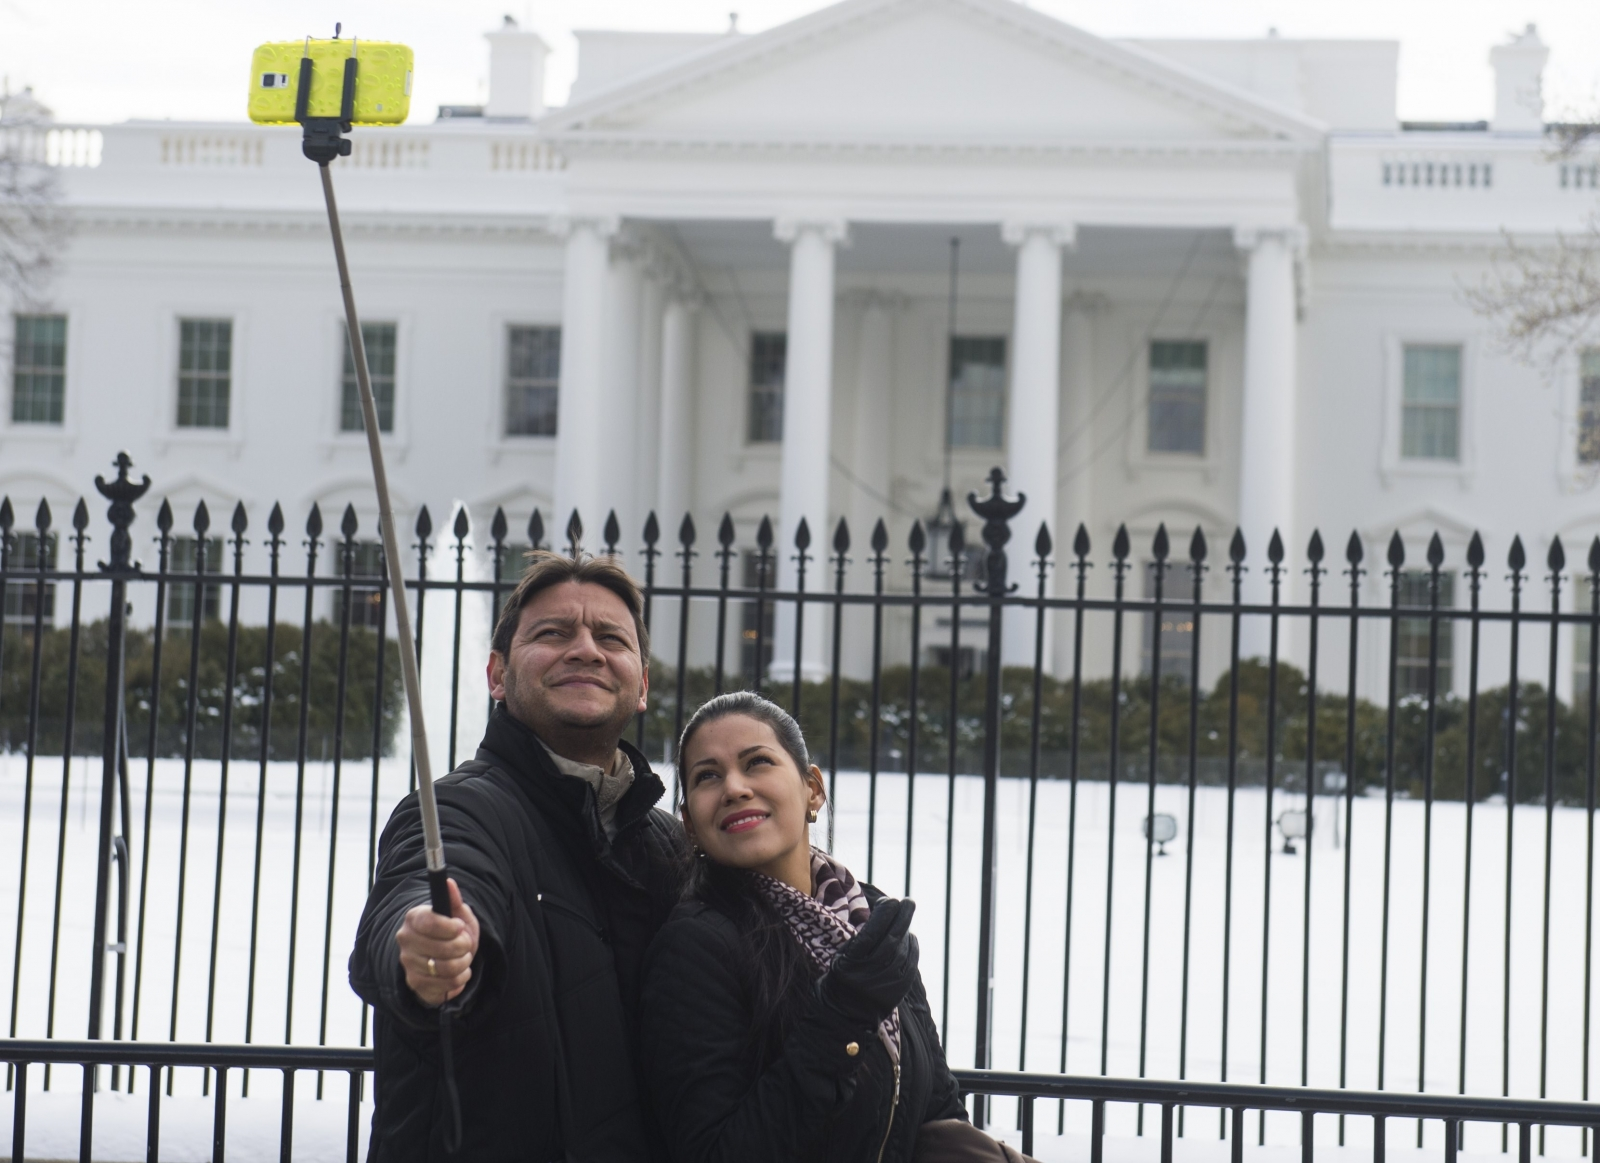 Tourists selfie stick